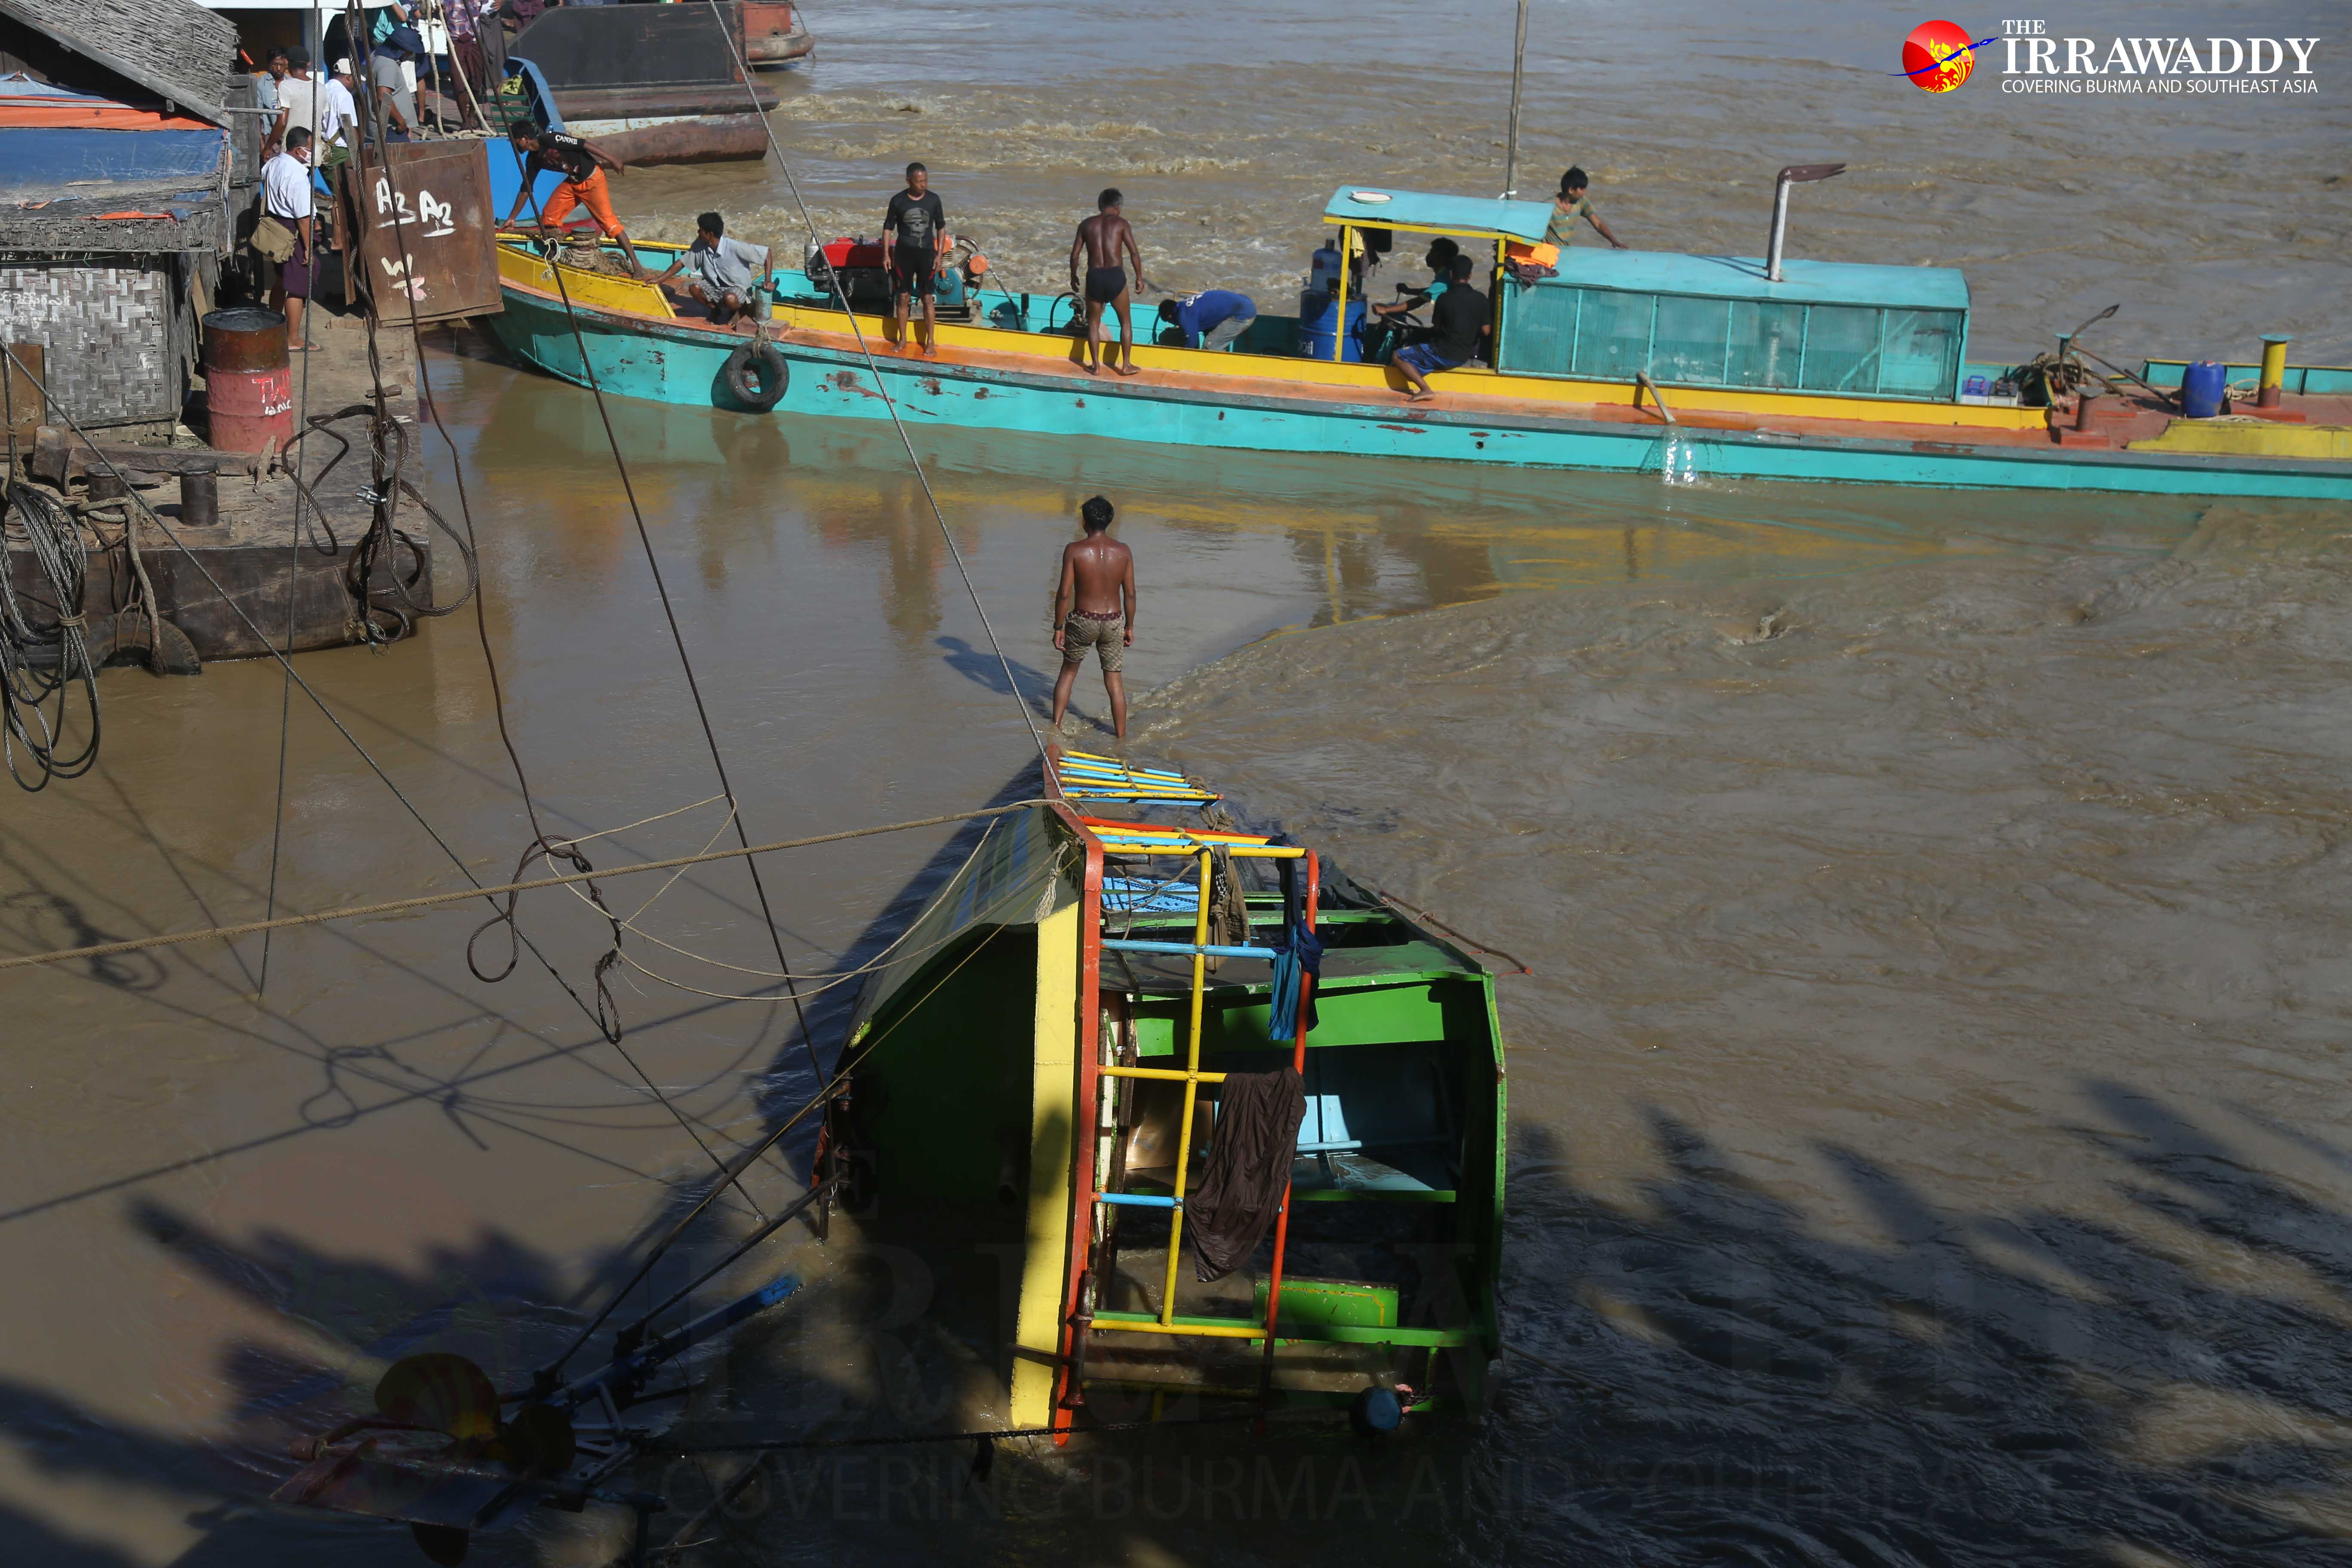 A rescue team tries to salvage a ferry that capsized, and killed at least 40, on the Chindwin River in Sagaing Division's Kani Township. (Photo: Pyay Kyaw/ The Irrawaddy)